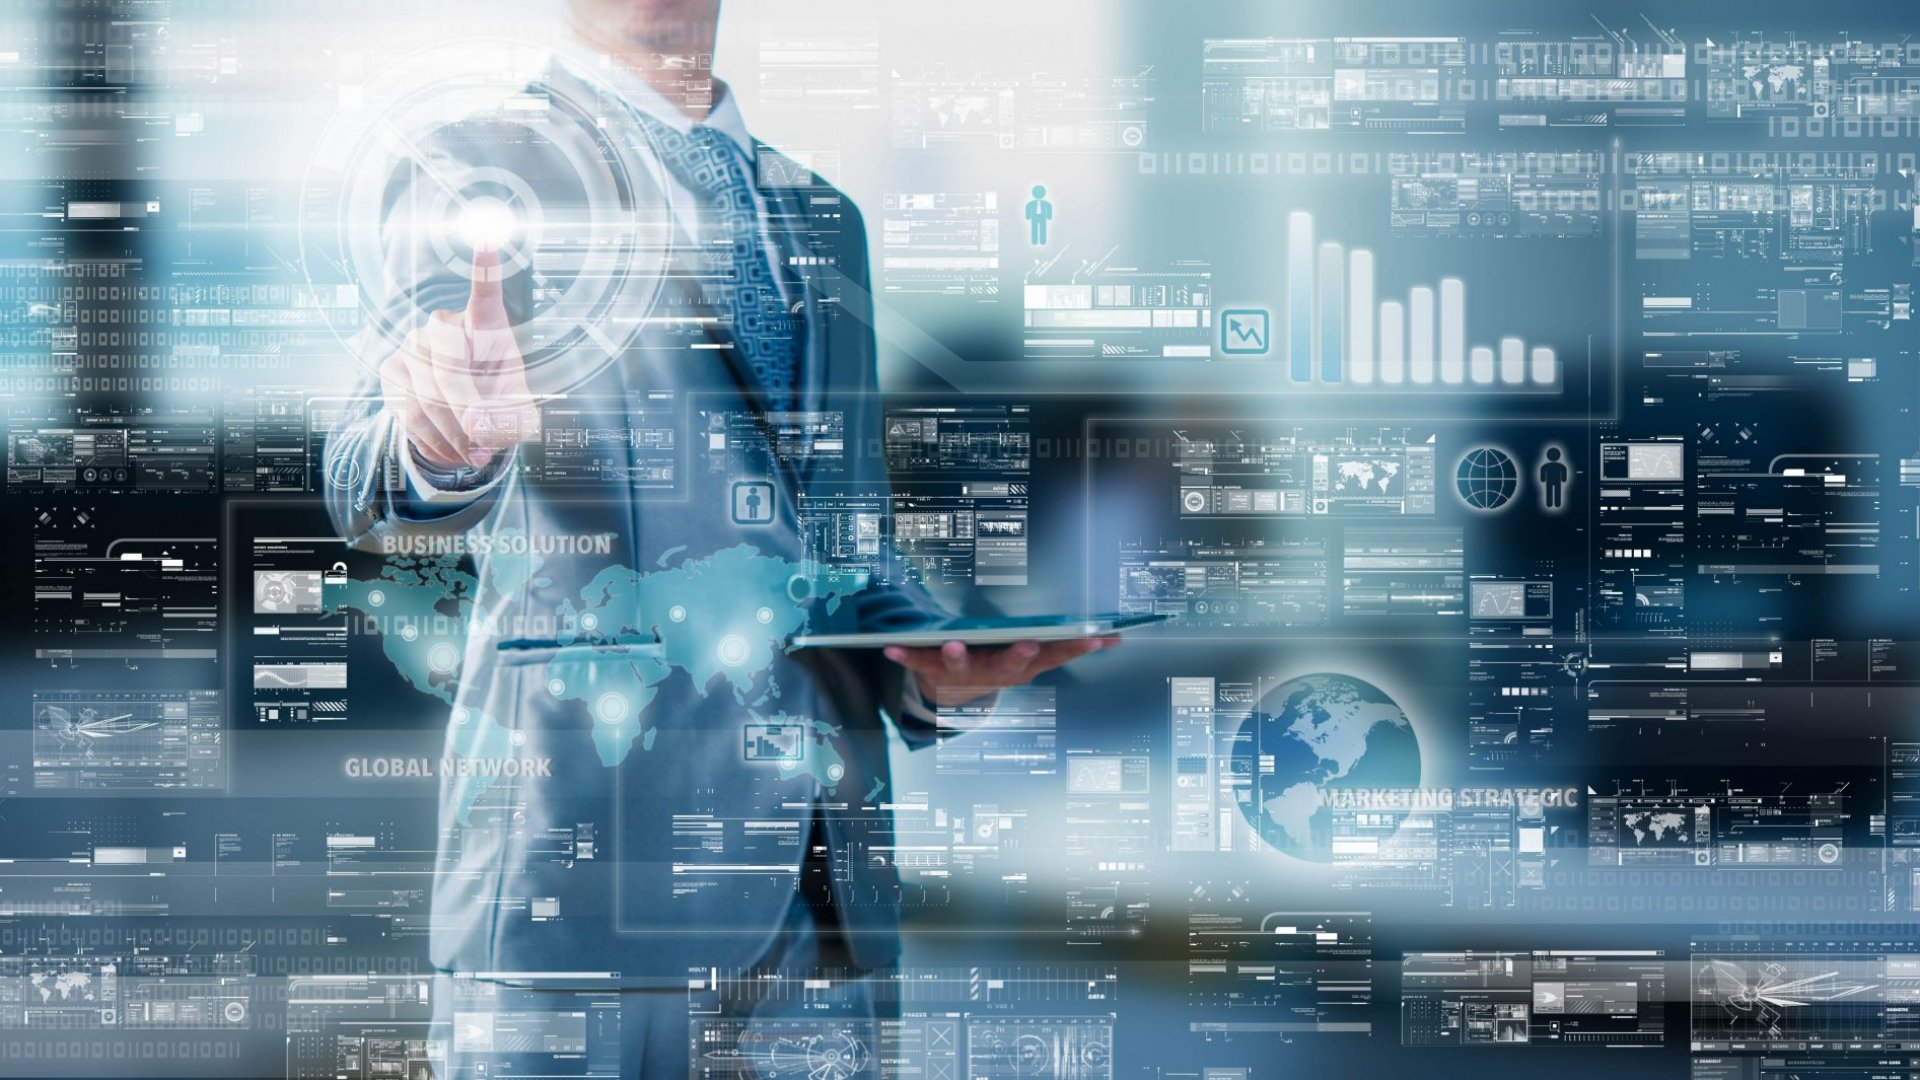 The 3 Most Important Things Managers Need To Know About Data